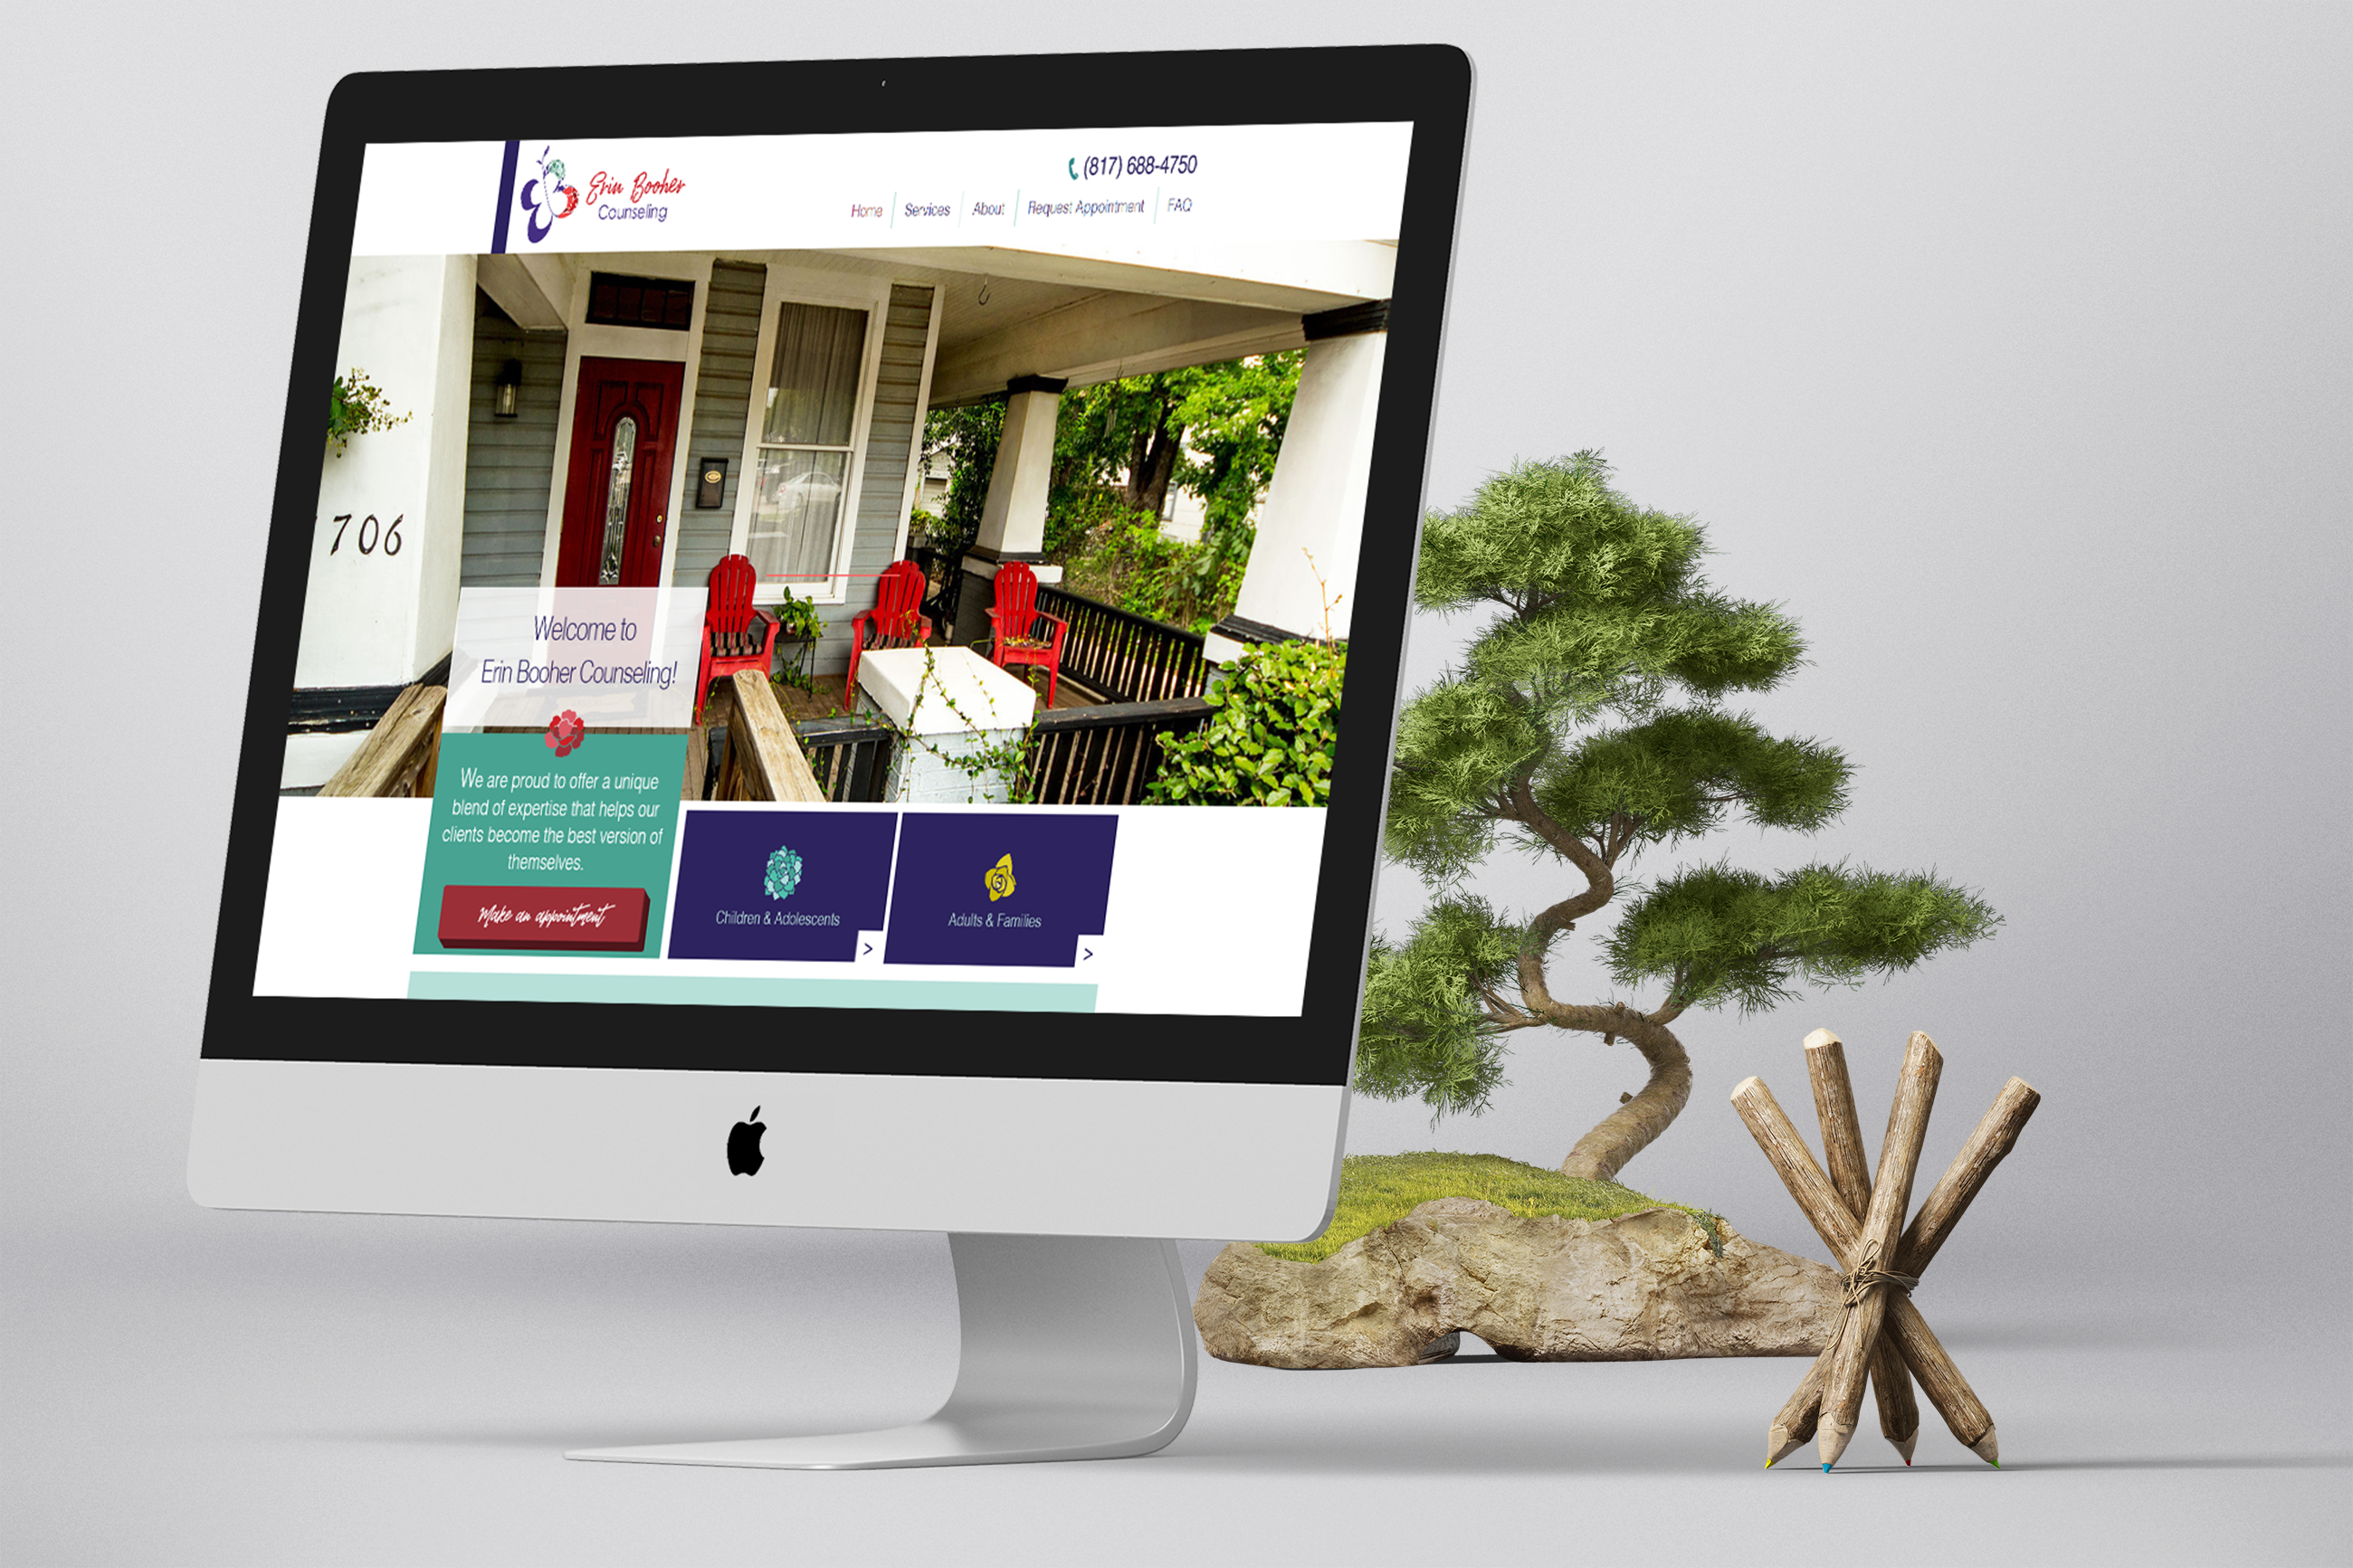 Graphic Design of a Website Design for a Counselor